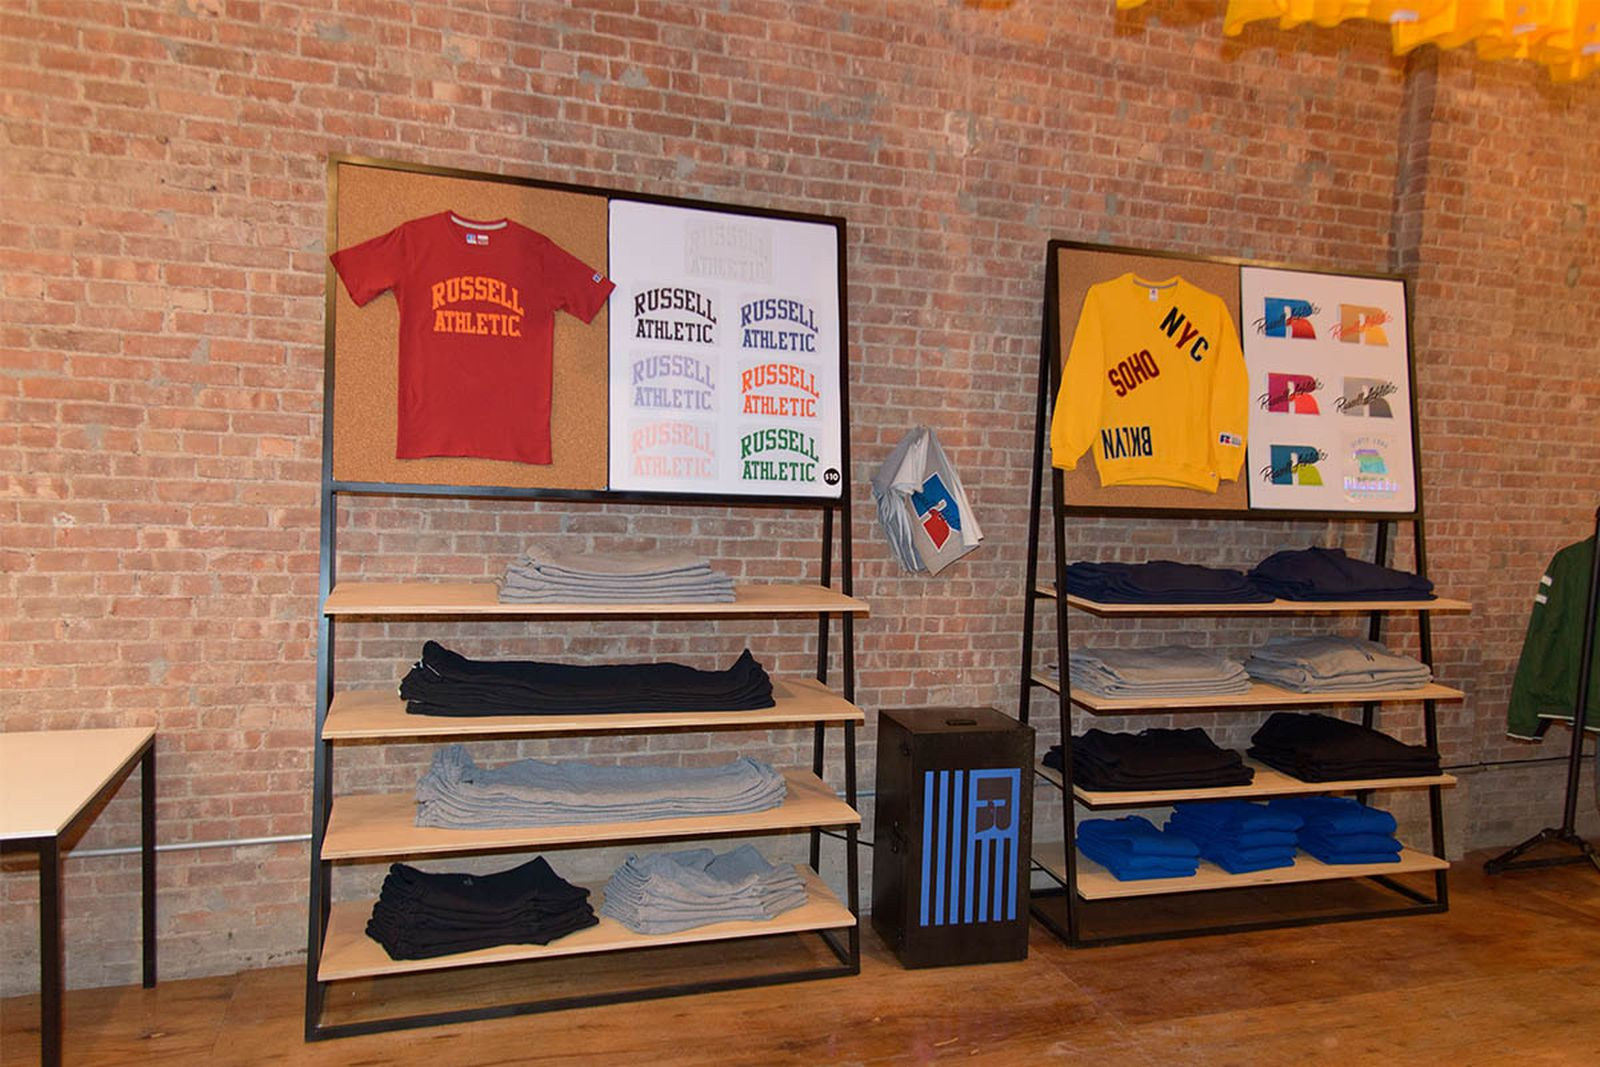 russell-athletic-nyc-pop-up-07